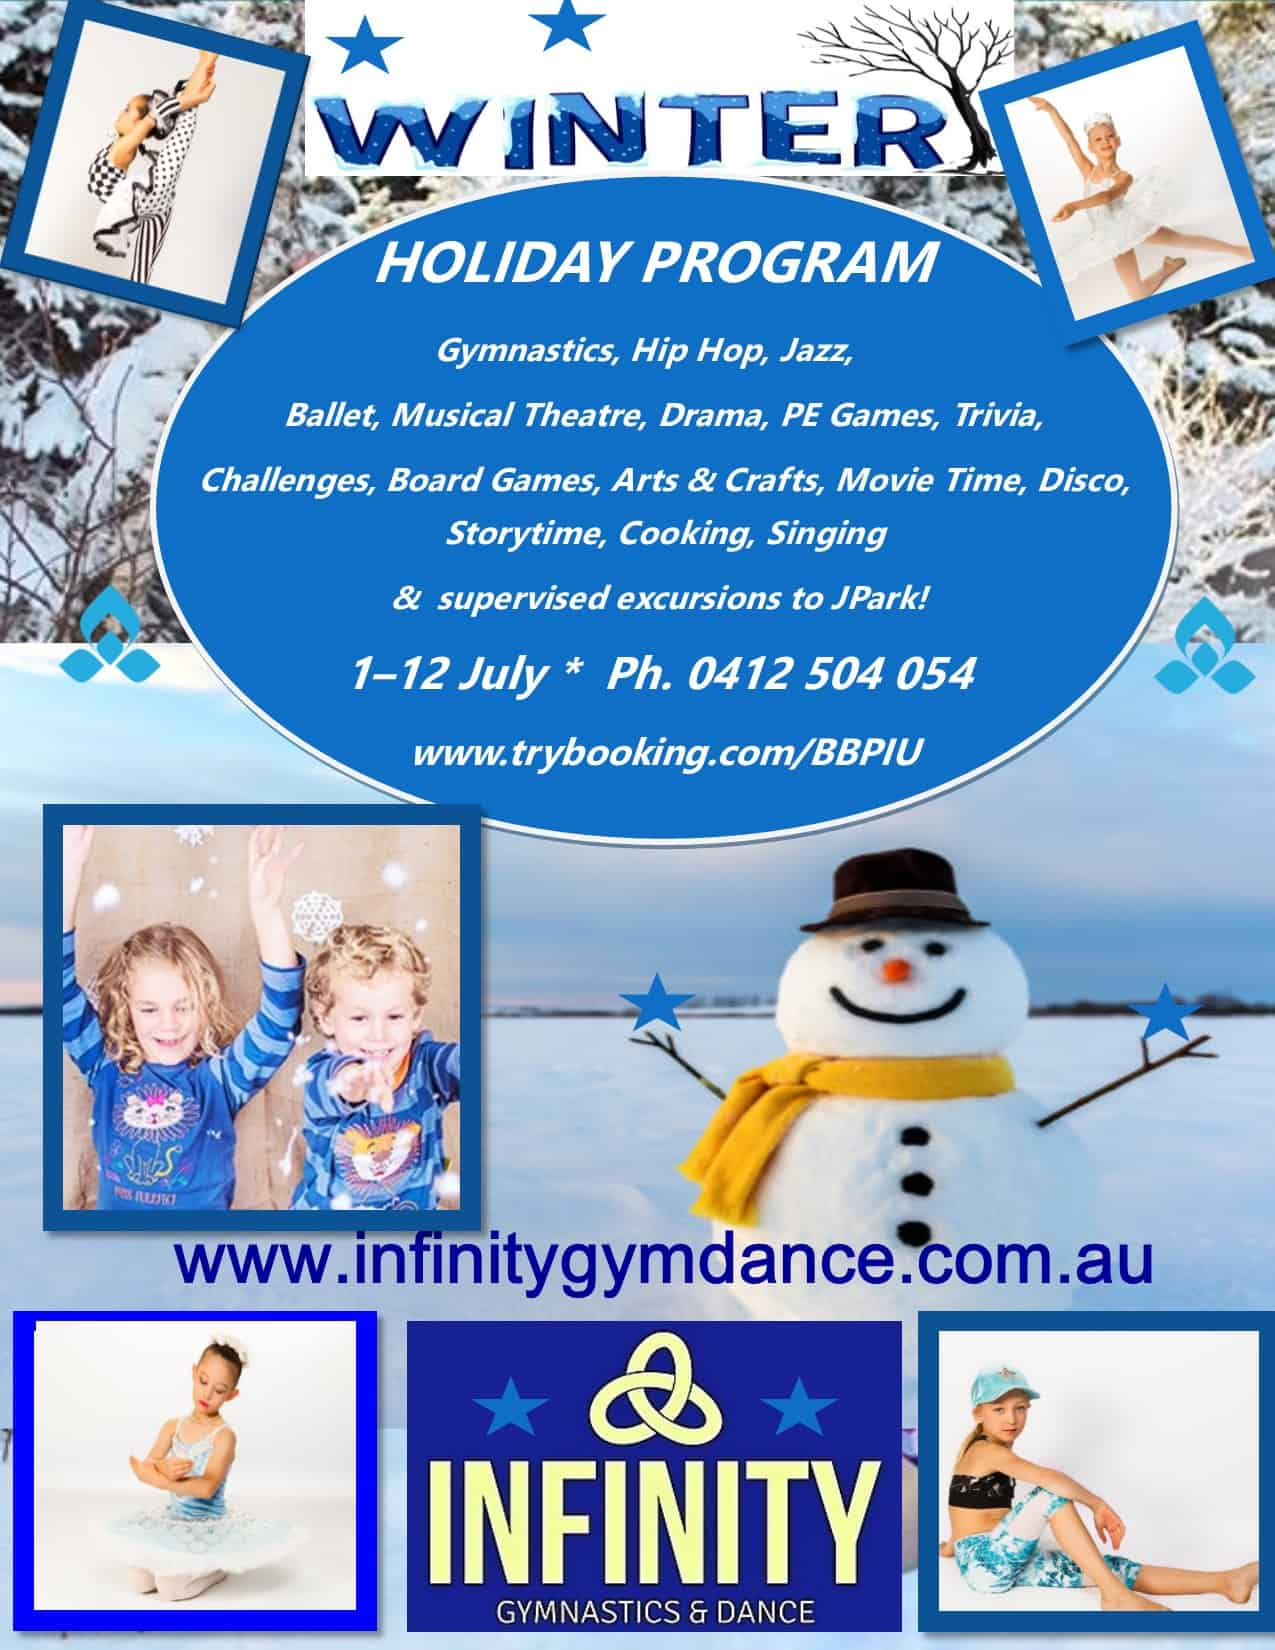 Winter Holiday Program 2019 flyer